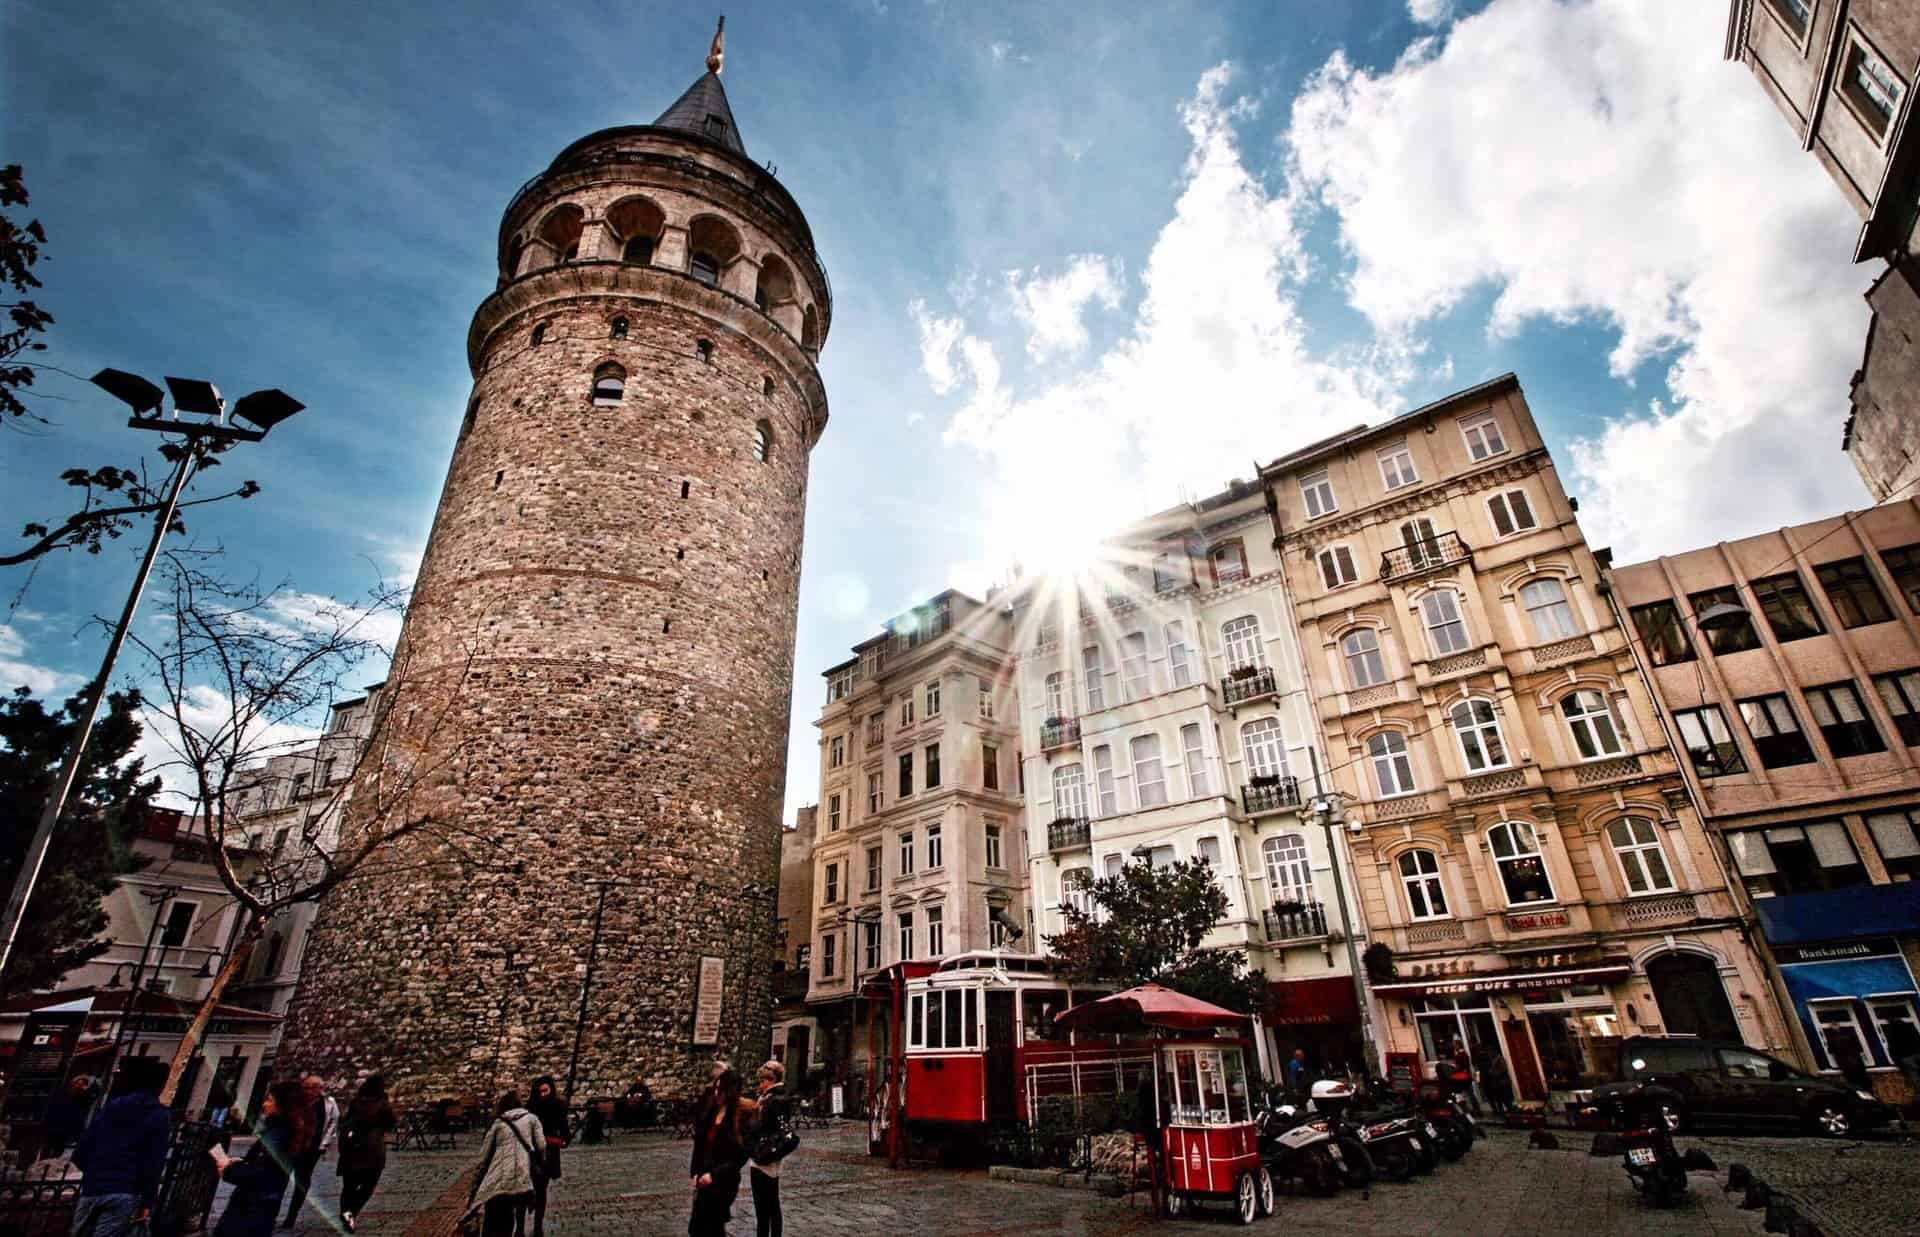 Galata Tower from the street level